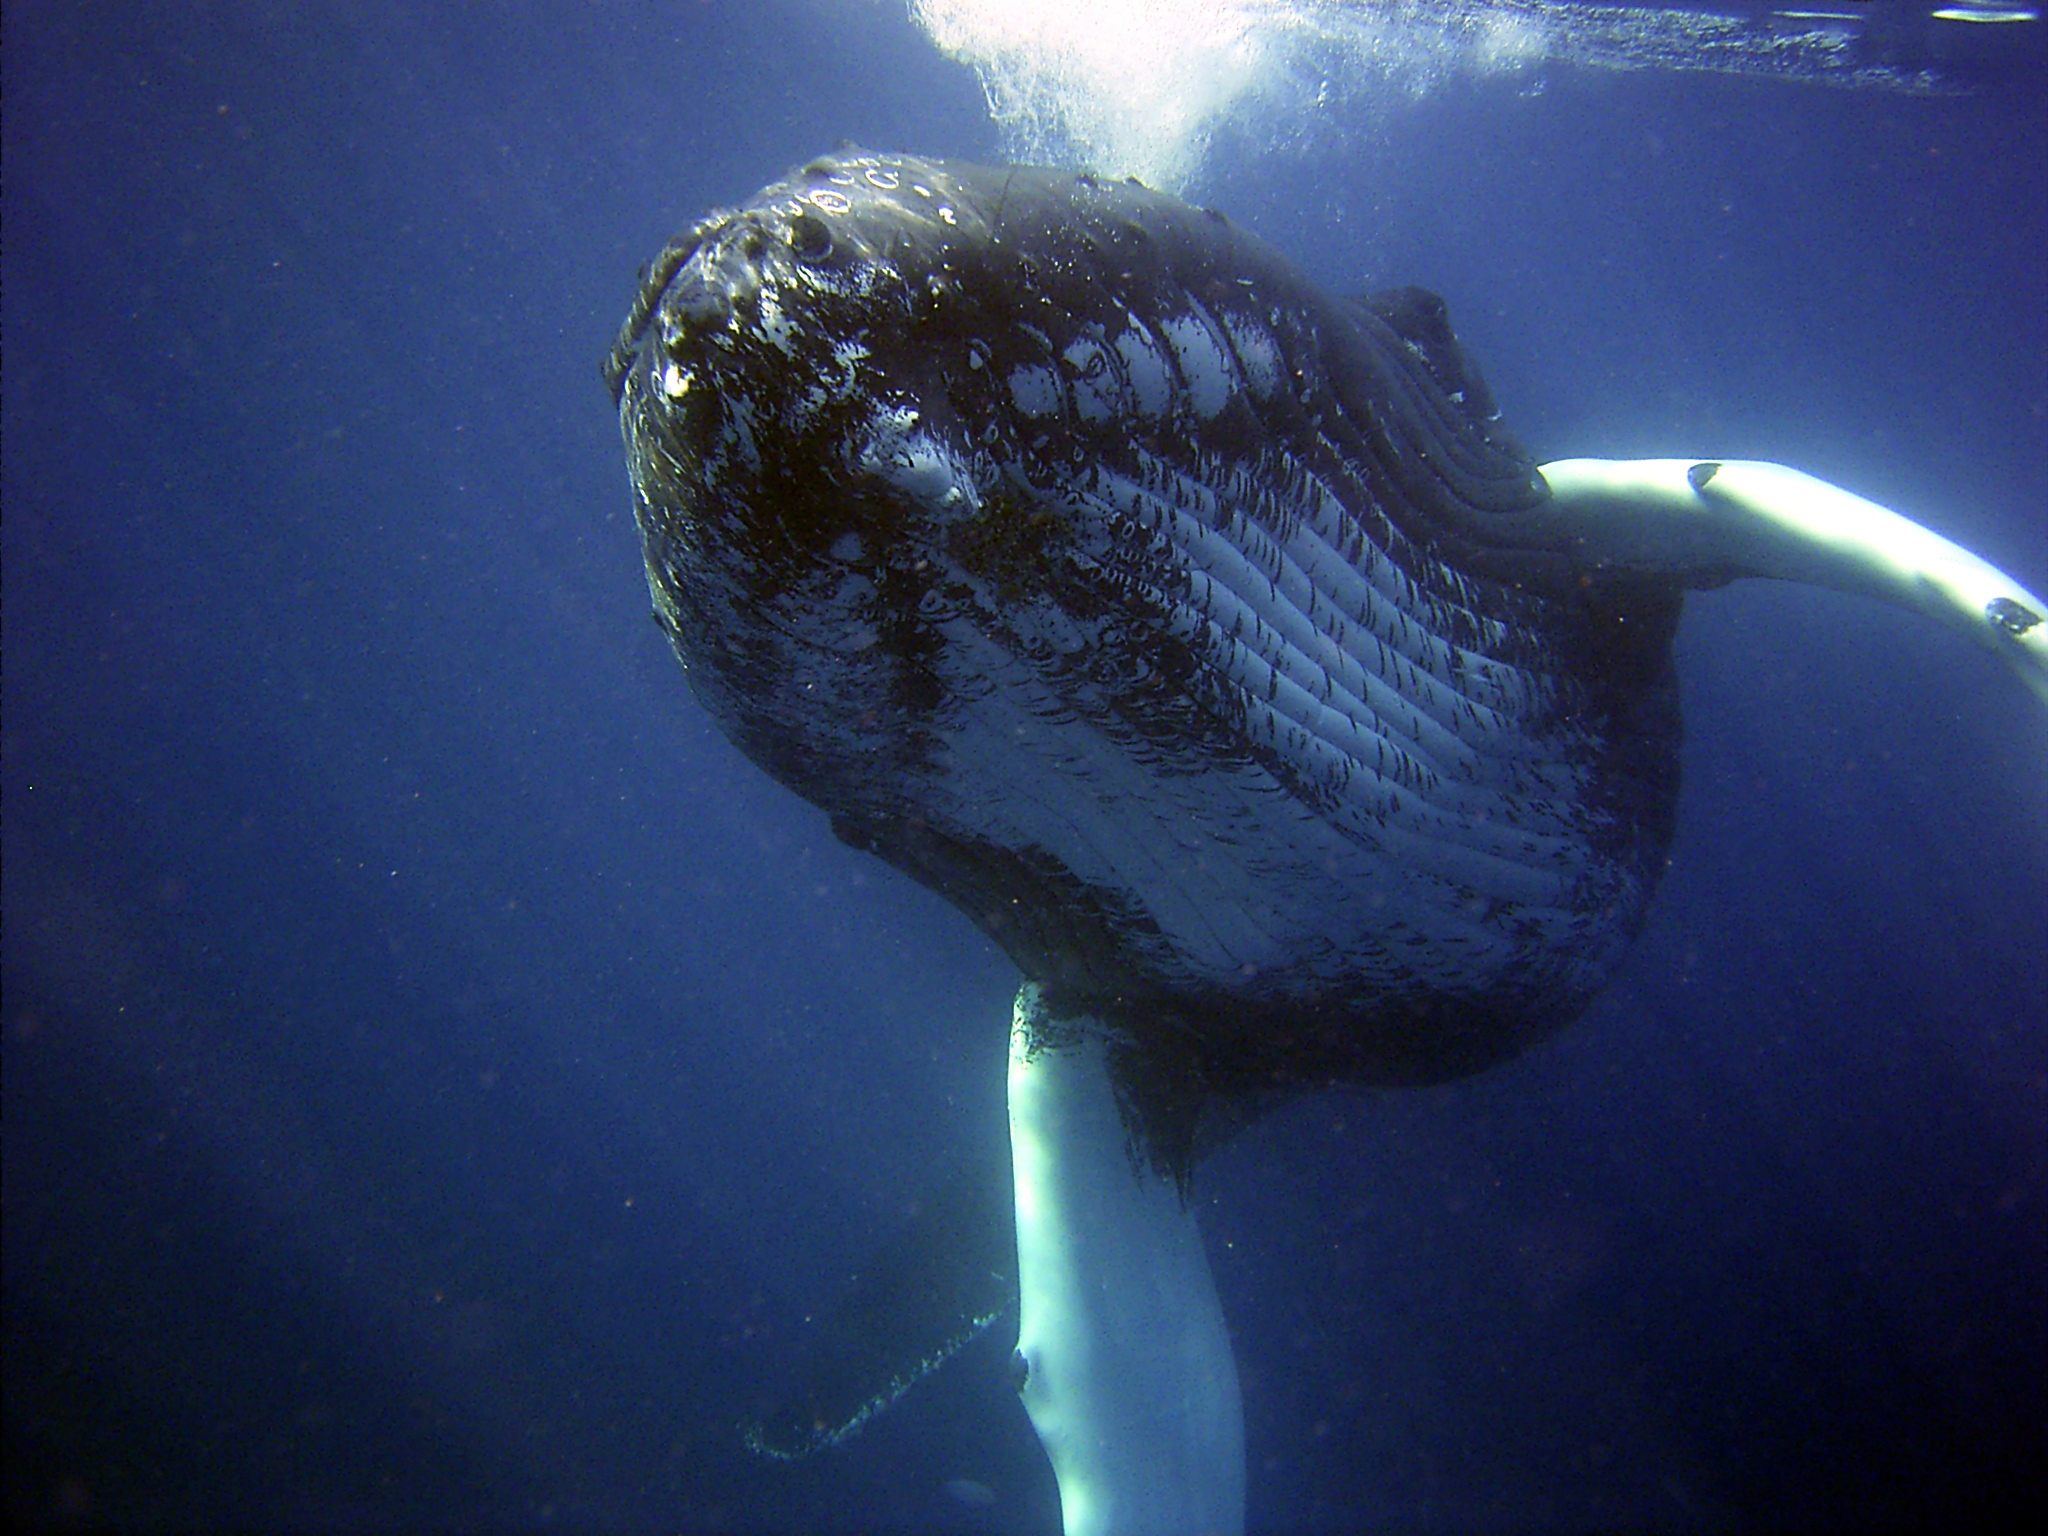 Looking up at a whale swimming in the ocean.